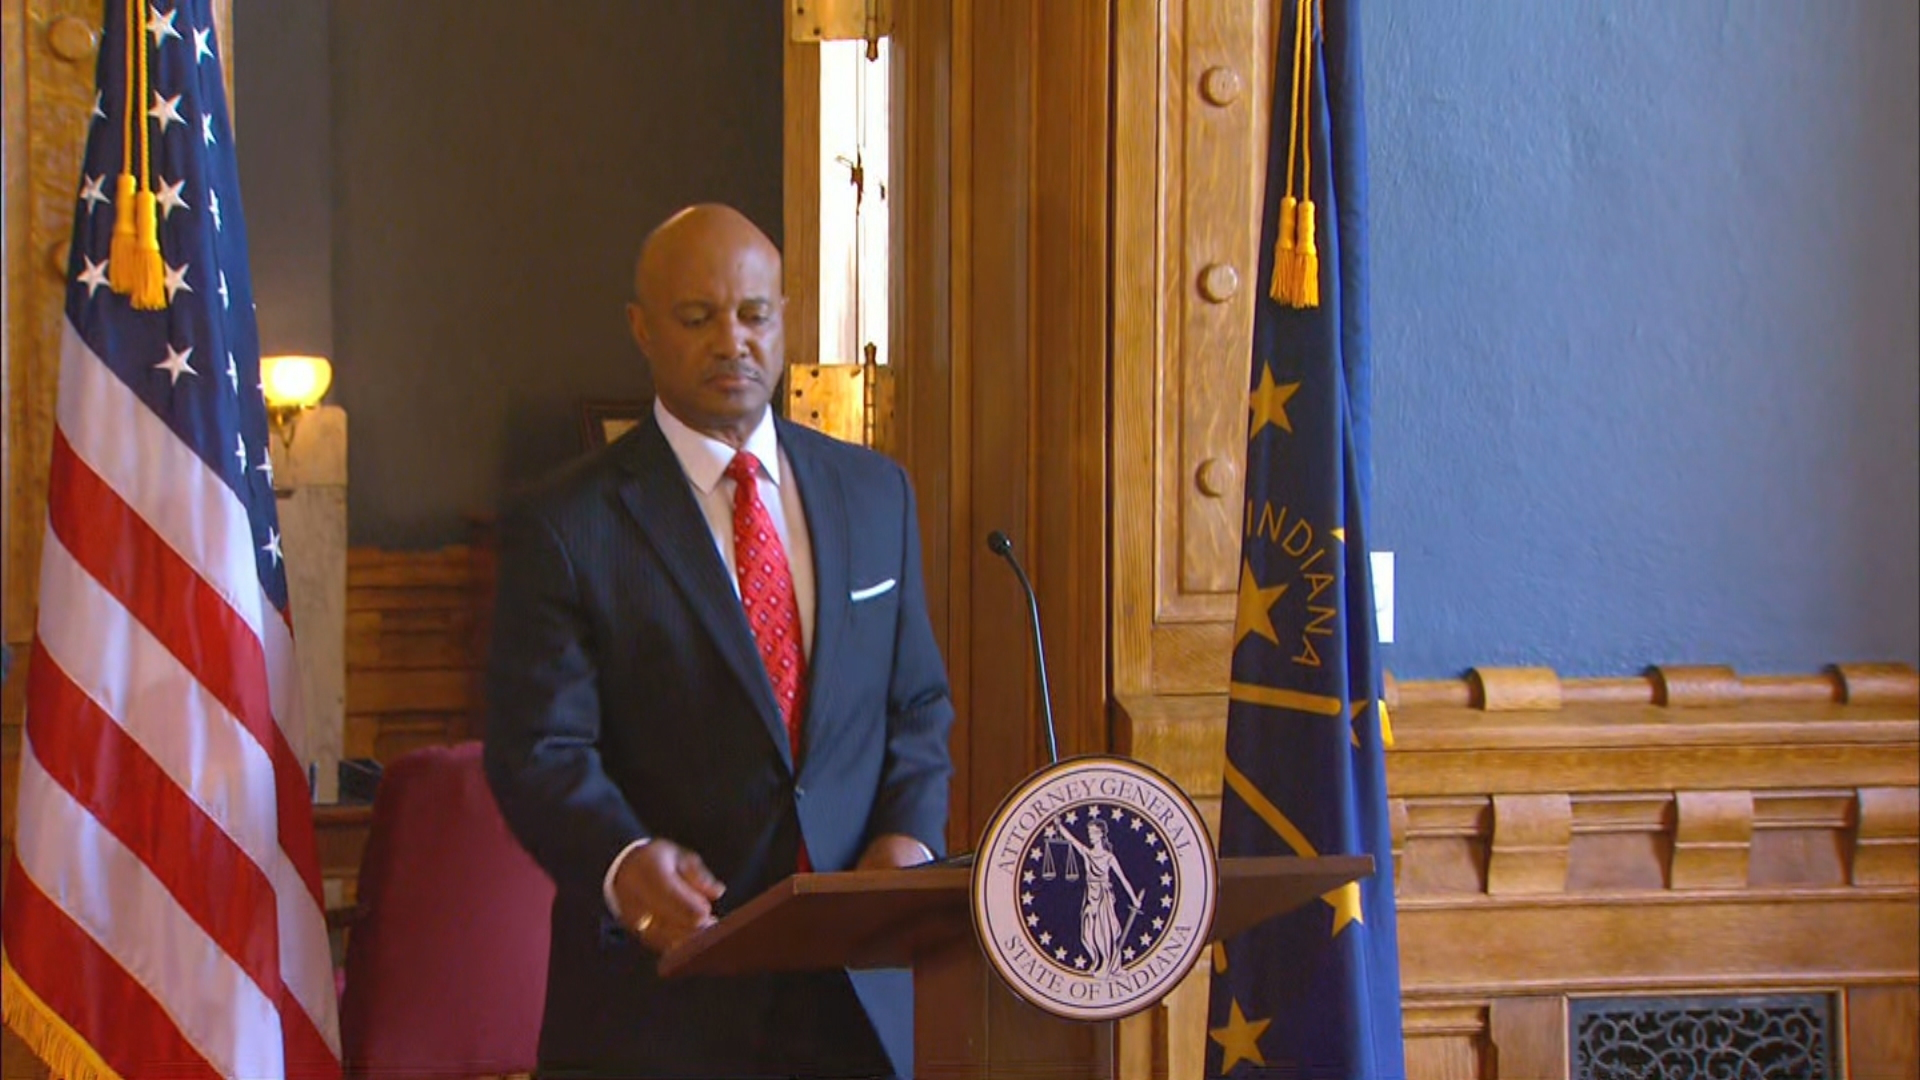 Indiana_attorney_general_Curtis_Hill_s_a_1_20180718211339-873774424